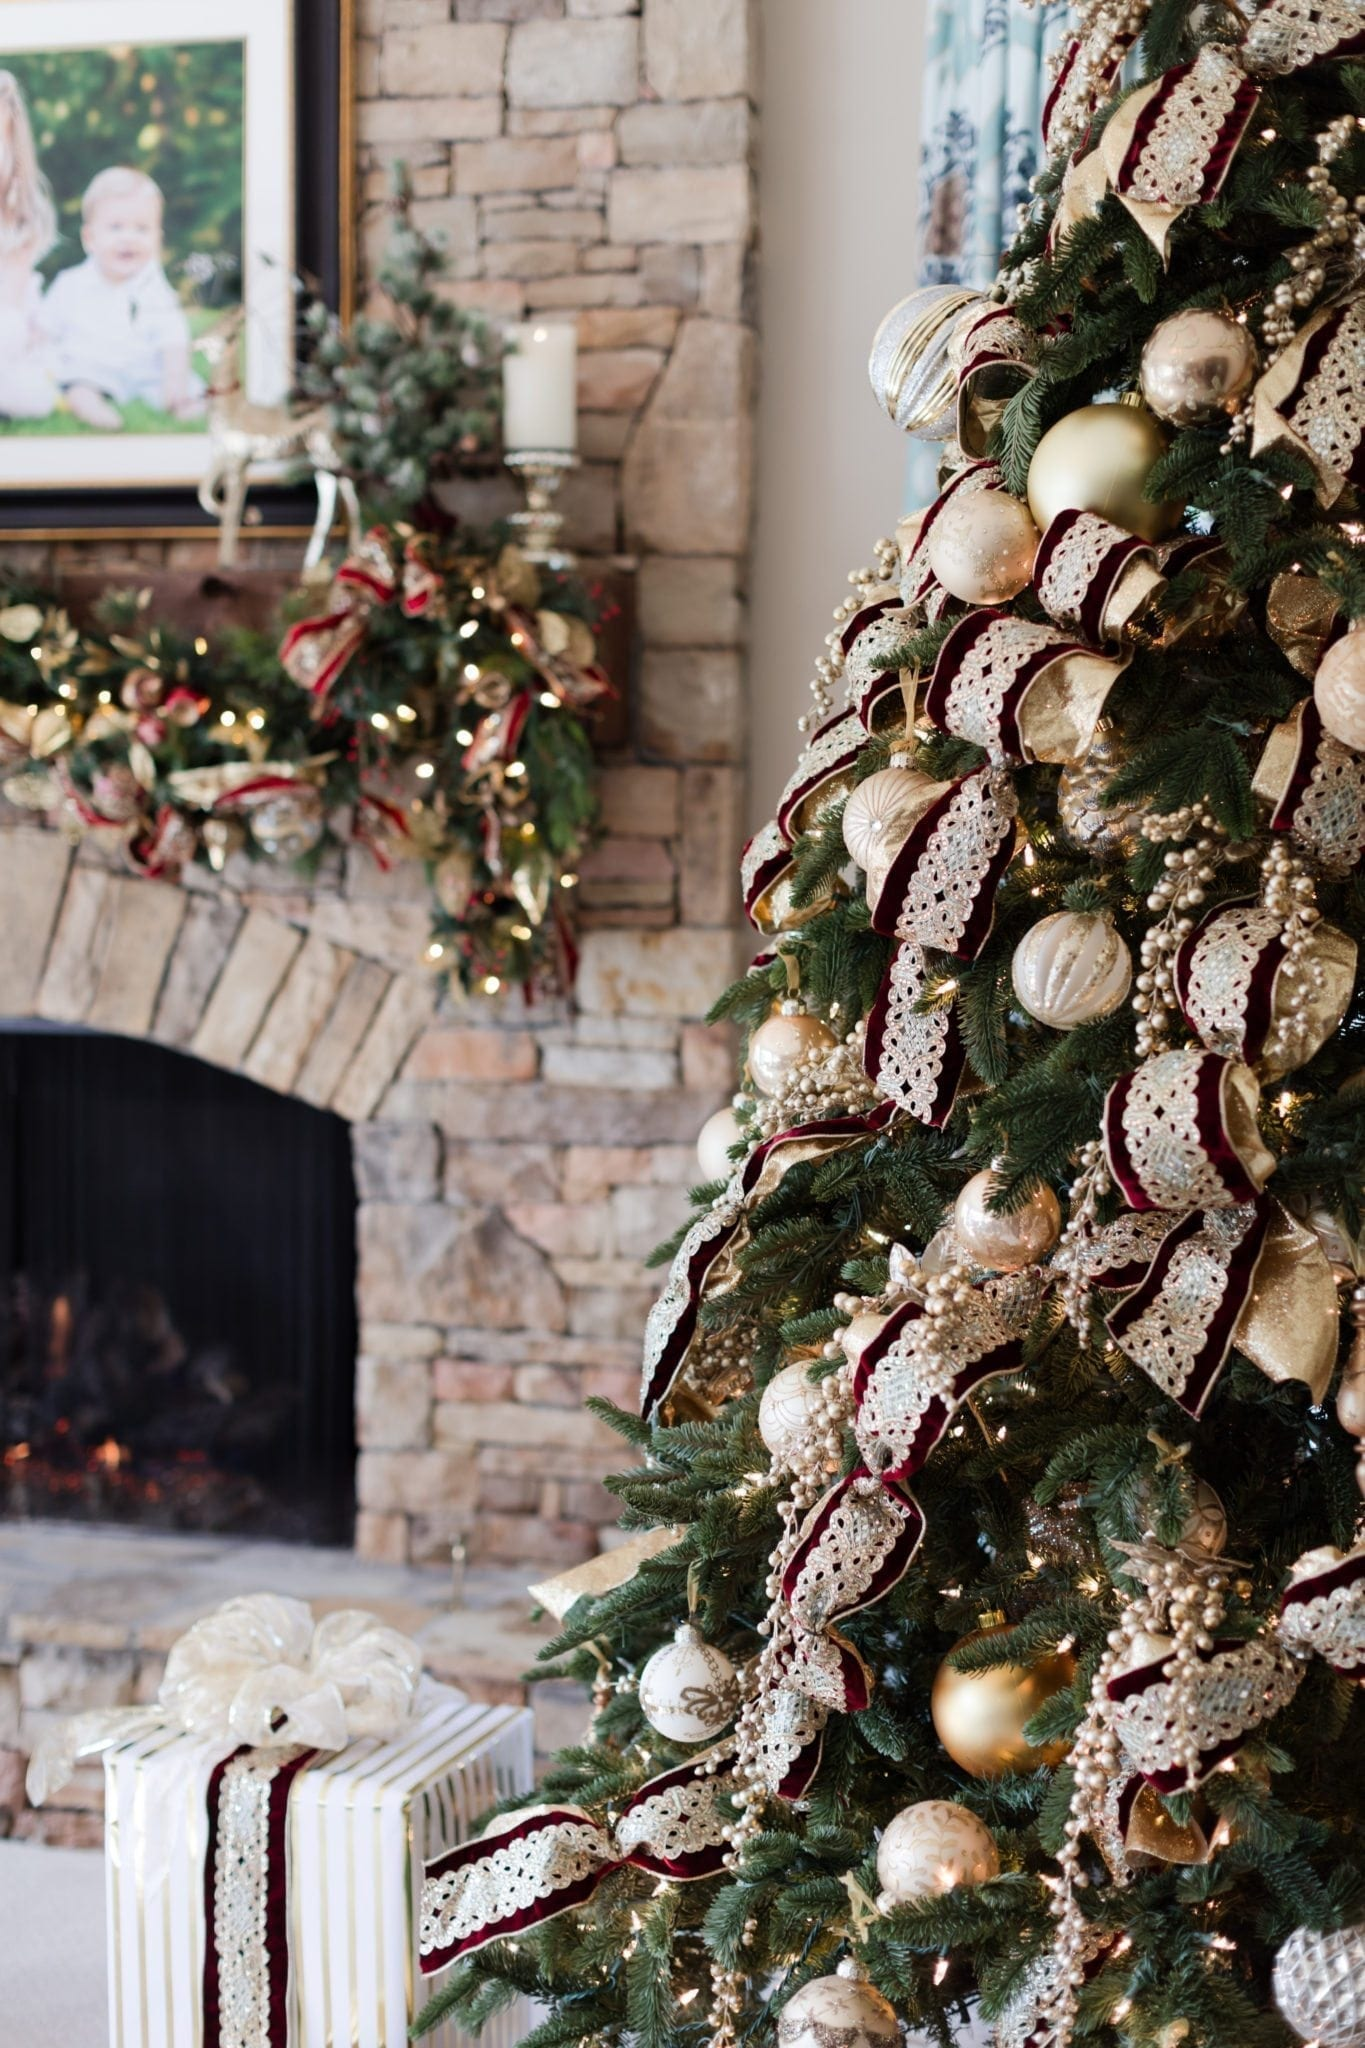 Stone fireplace with Christmas decor on mantle. Frontgate artificial tree with gold and red decorations.